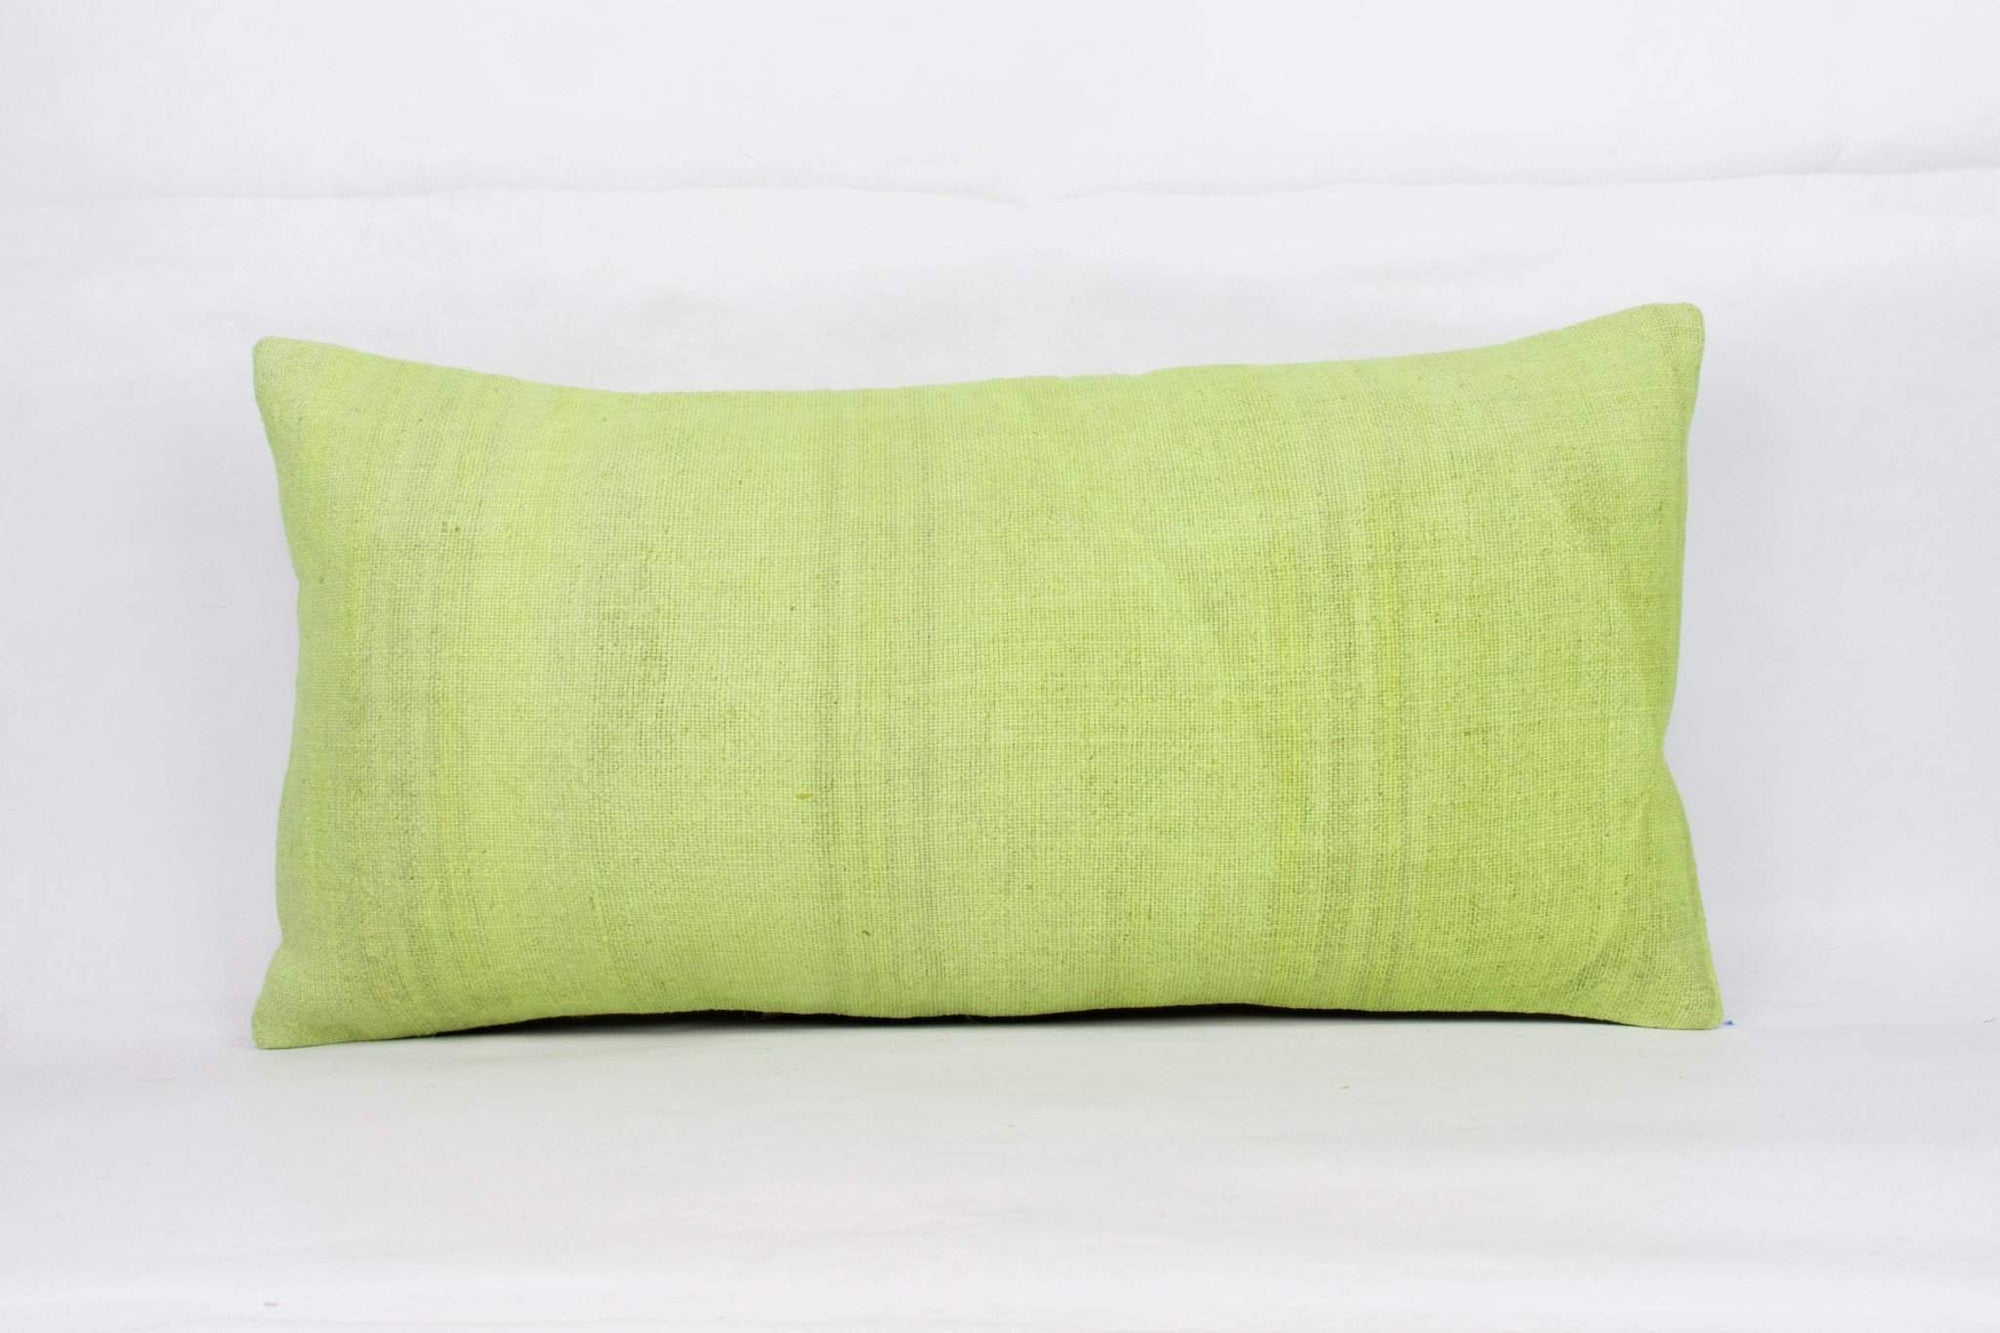 Plain Green Kilim Pillow Cover 12x24 4128 - kilimpillowstore  - 1